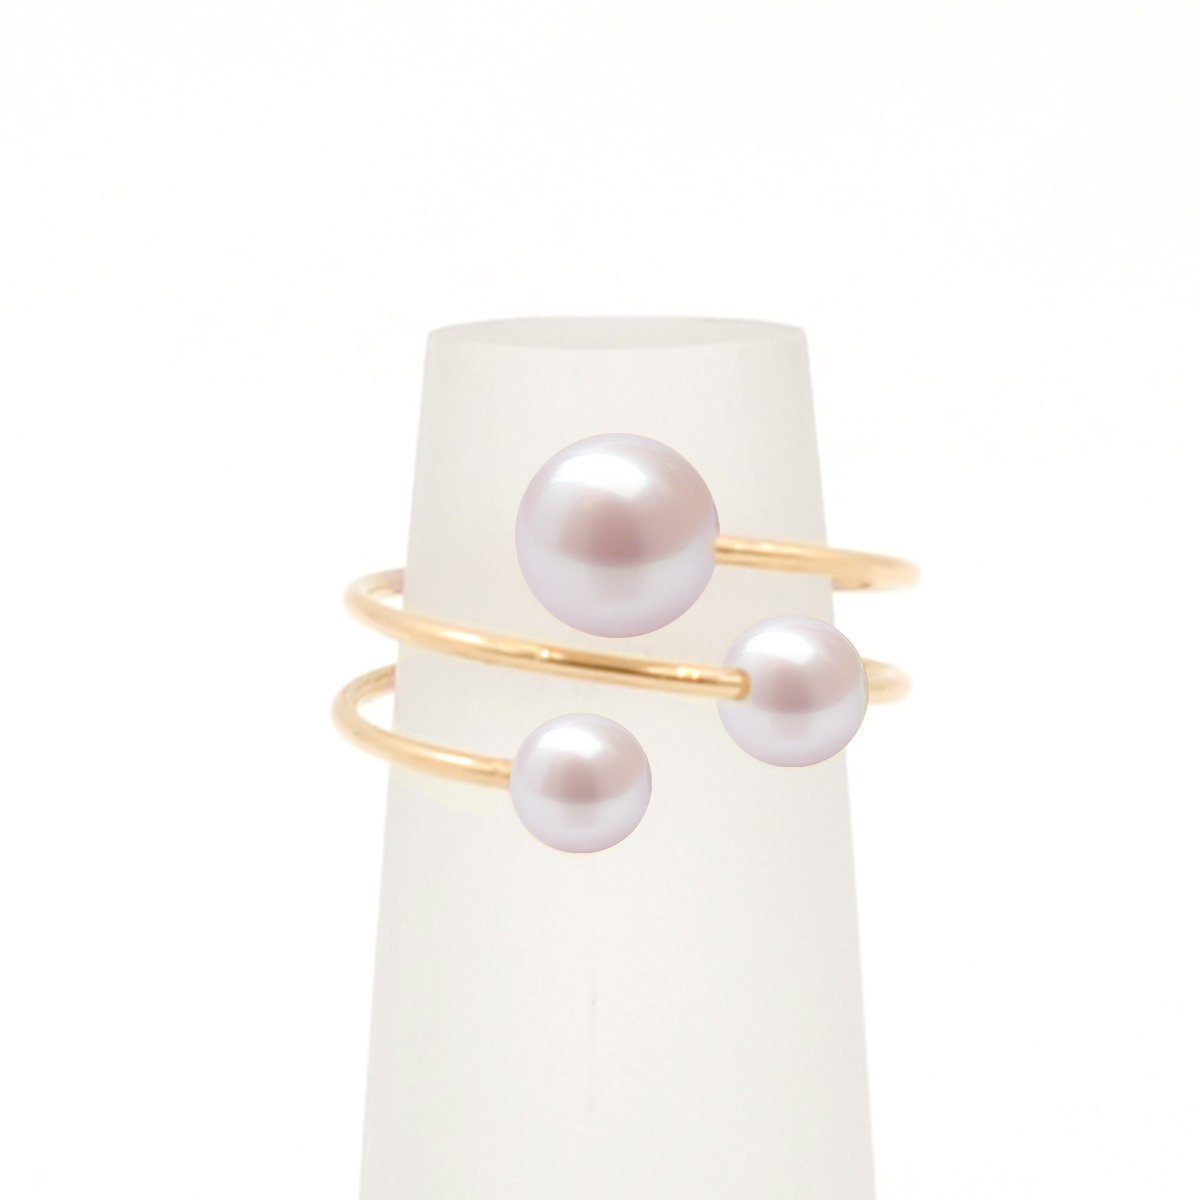 bubble ring-14K Gold Filled wire with cultured fresh water pearl ring